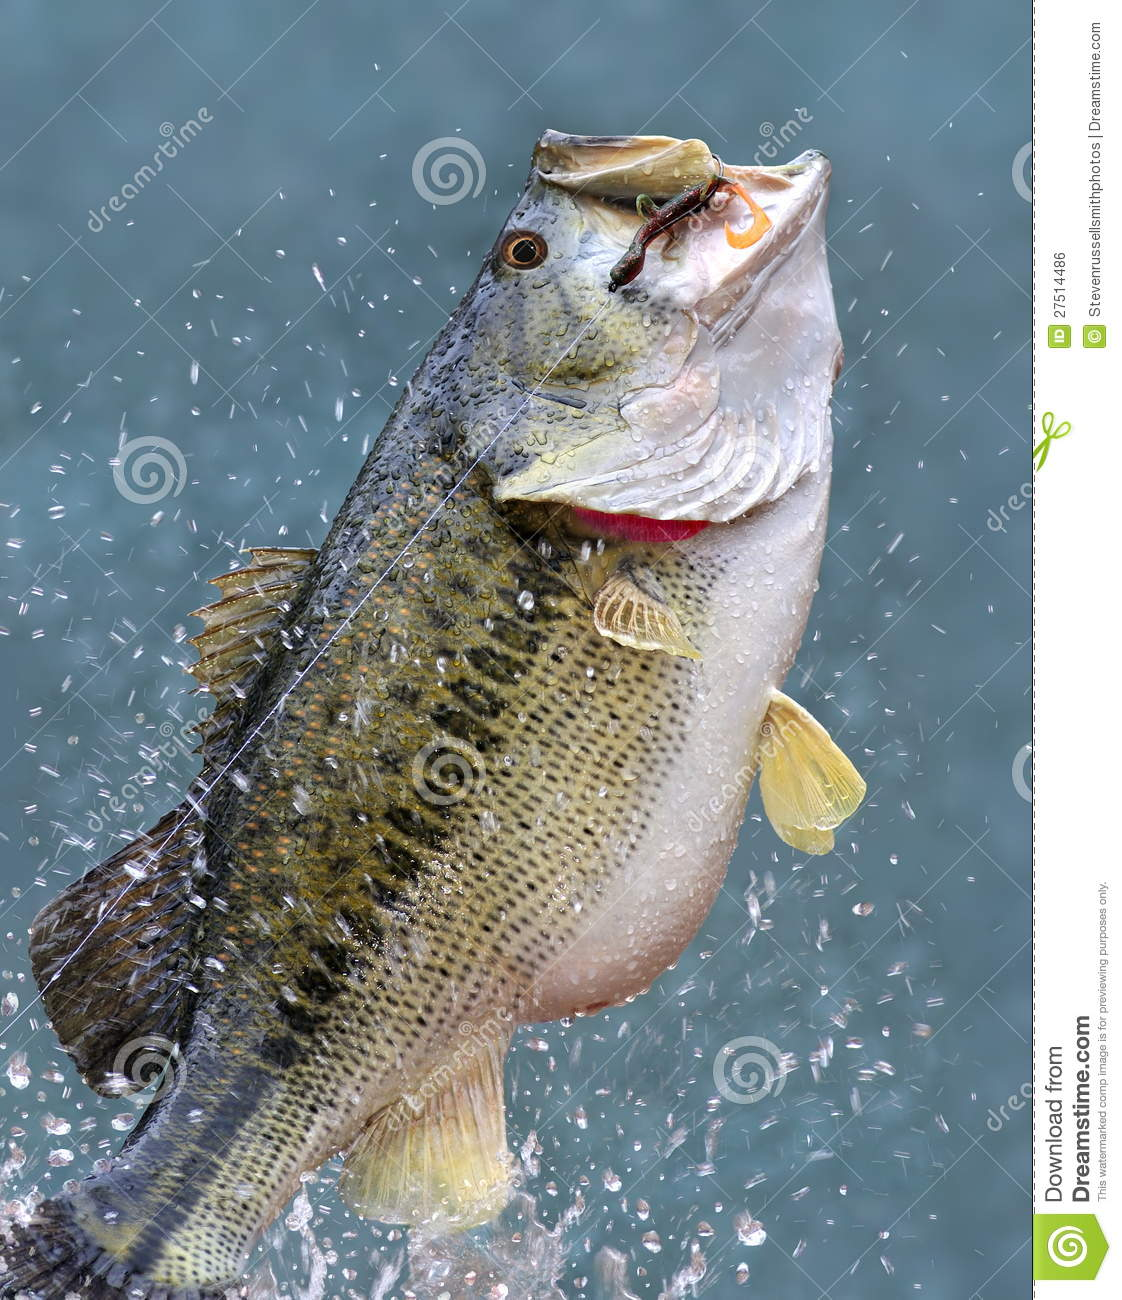 Leaping Largemouth Bass (Micropterus salmoides)